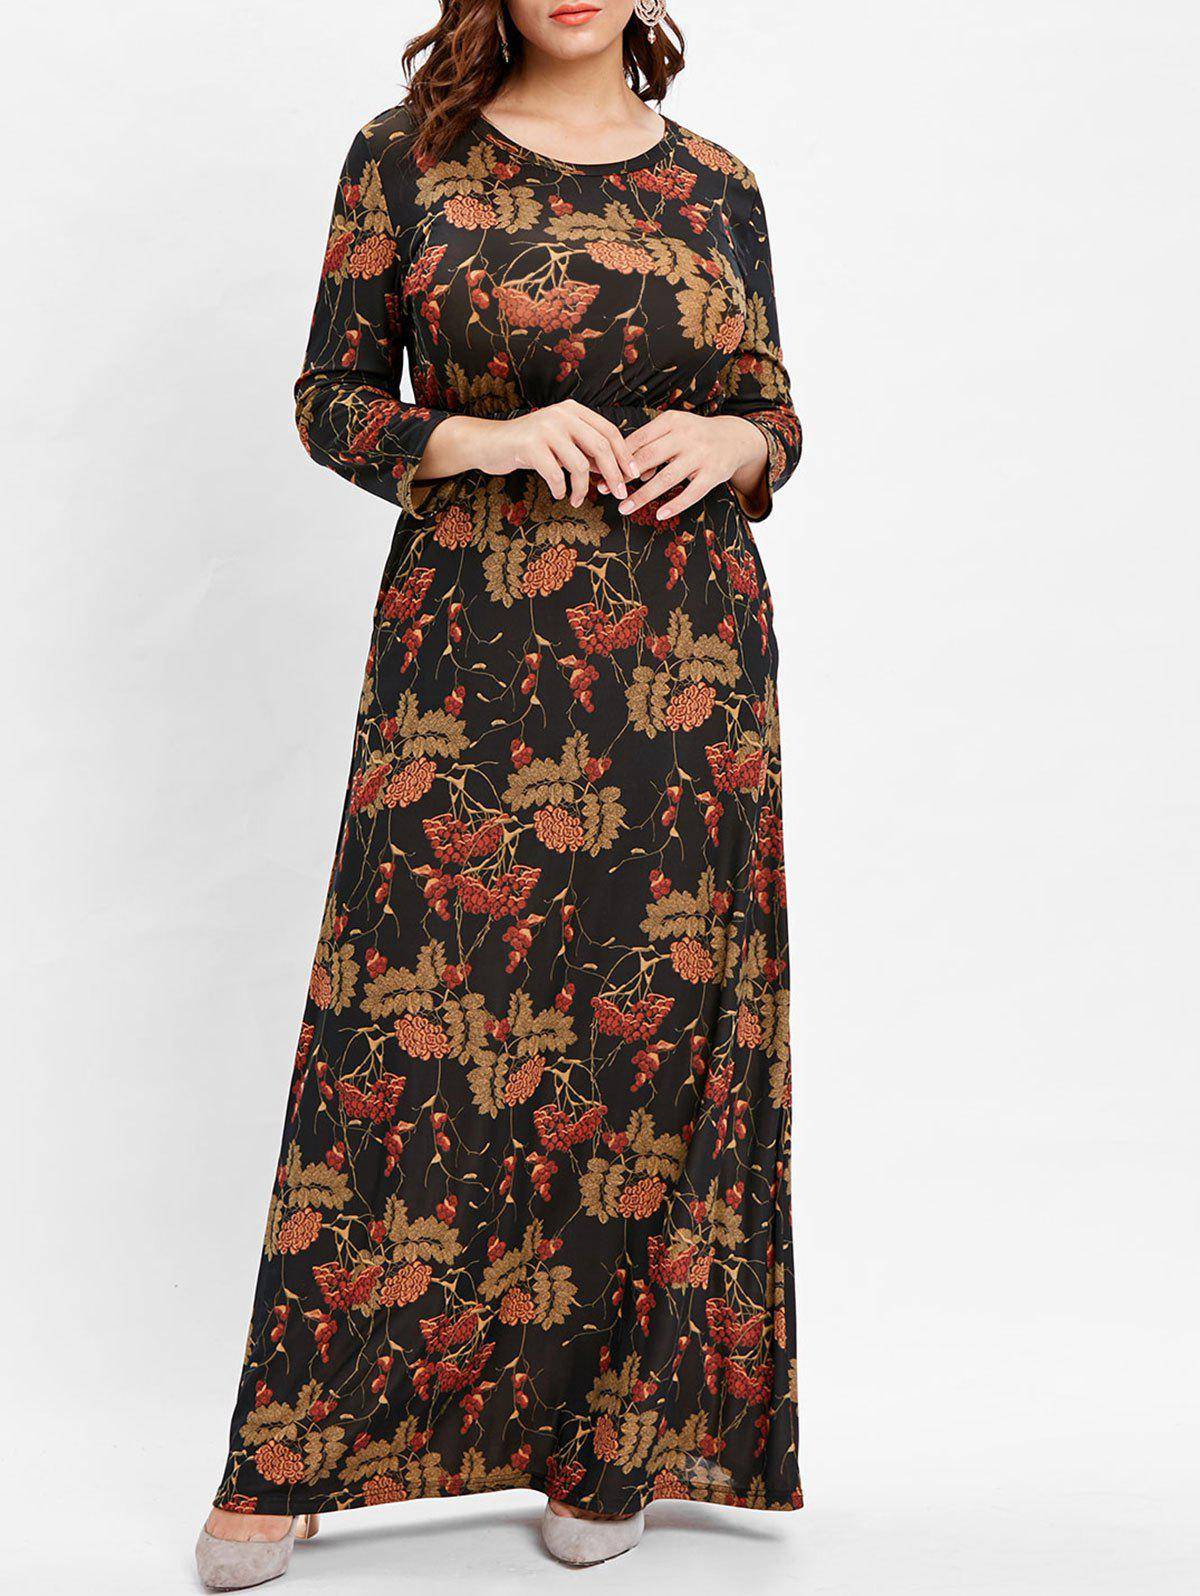 Plus Size Long Sleeve Printed Floor Length Dress - DEEP BROWN 1X